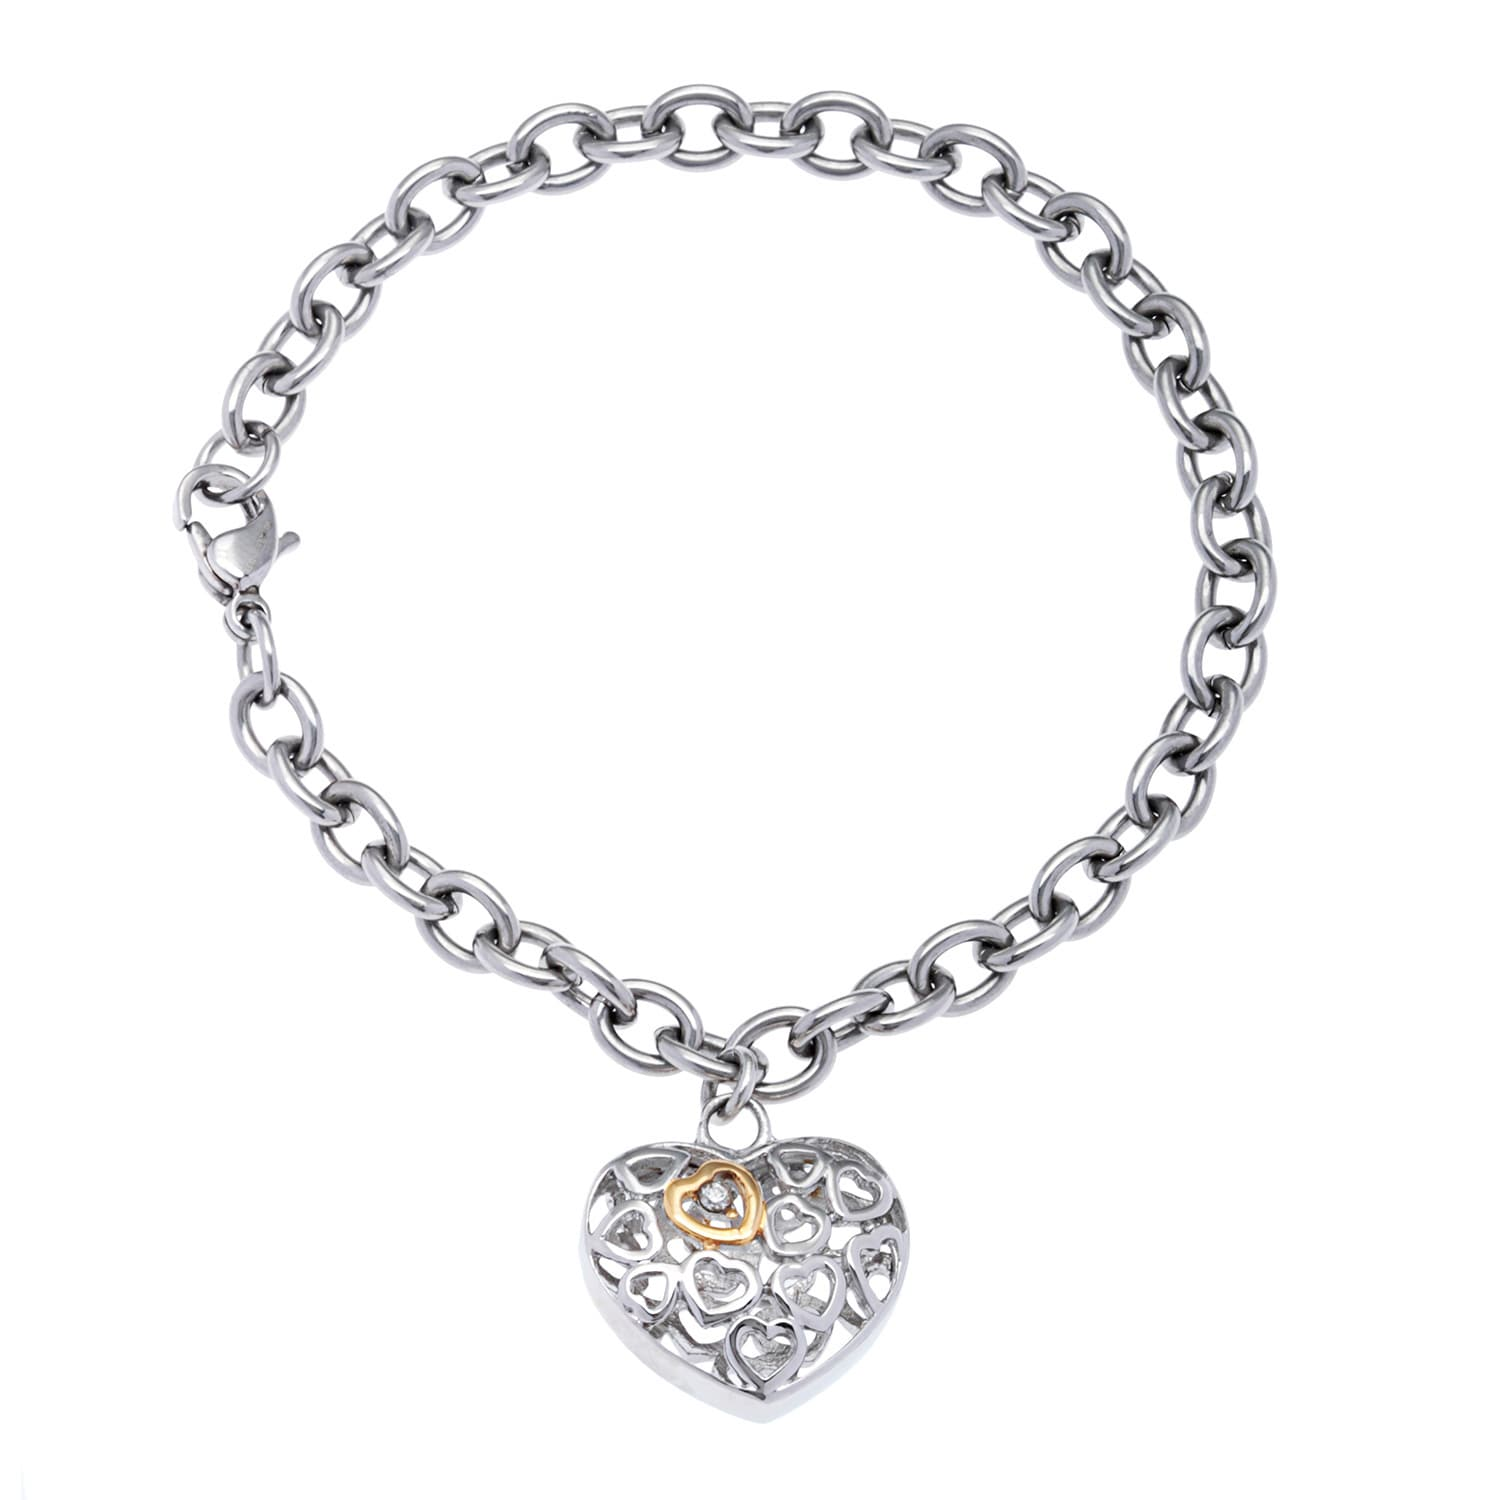 Stainless Steel Diamond Accent Puffed Heart Charm Bracele...